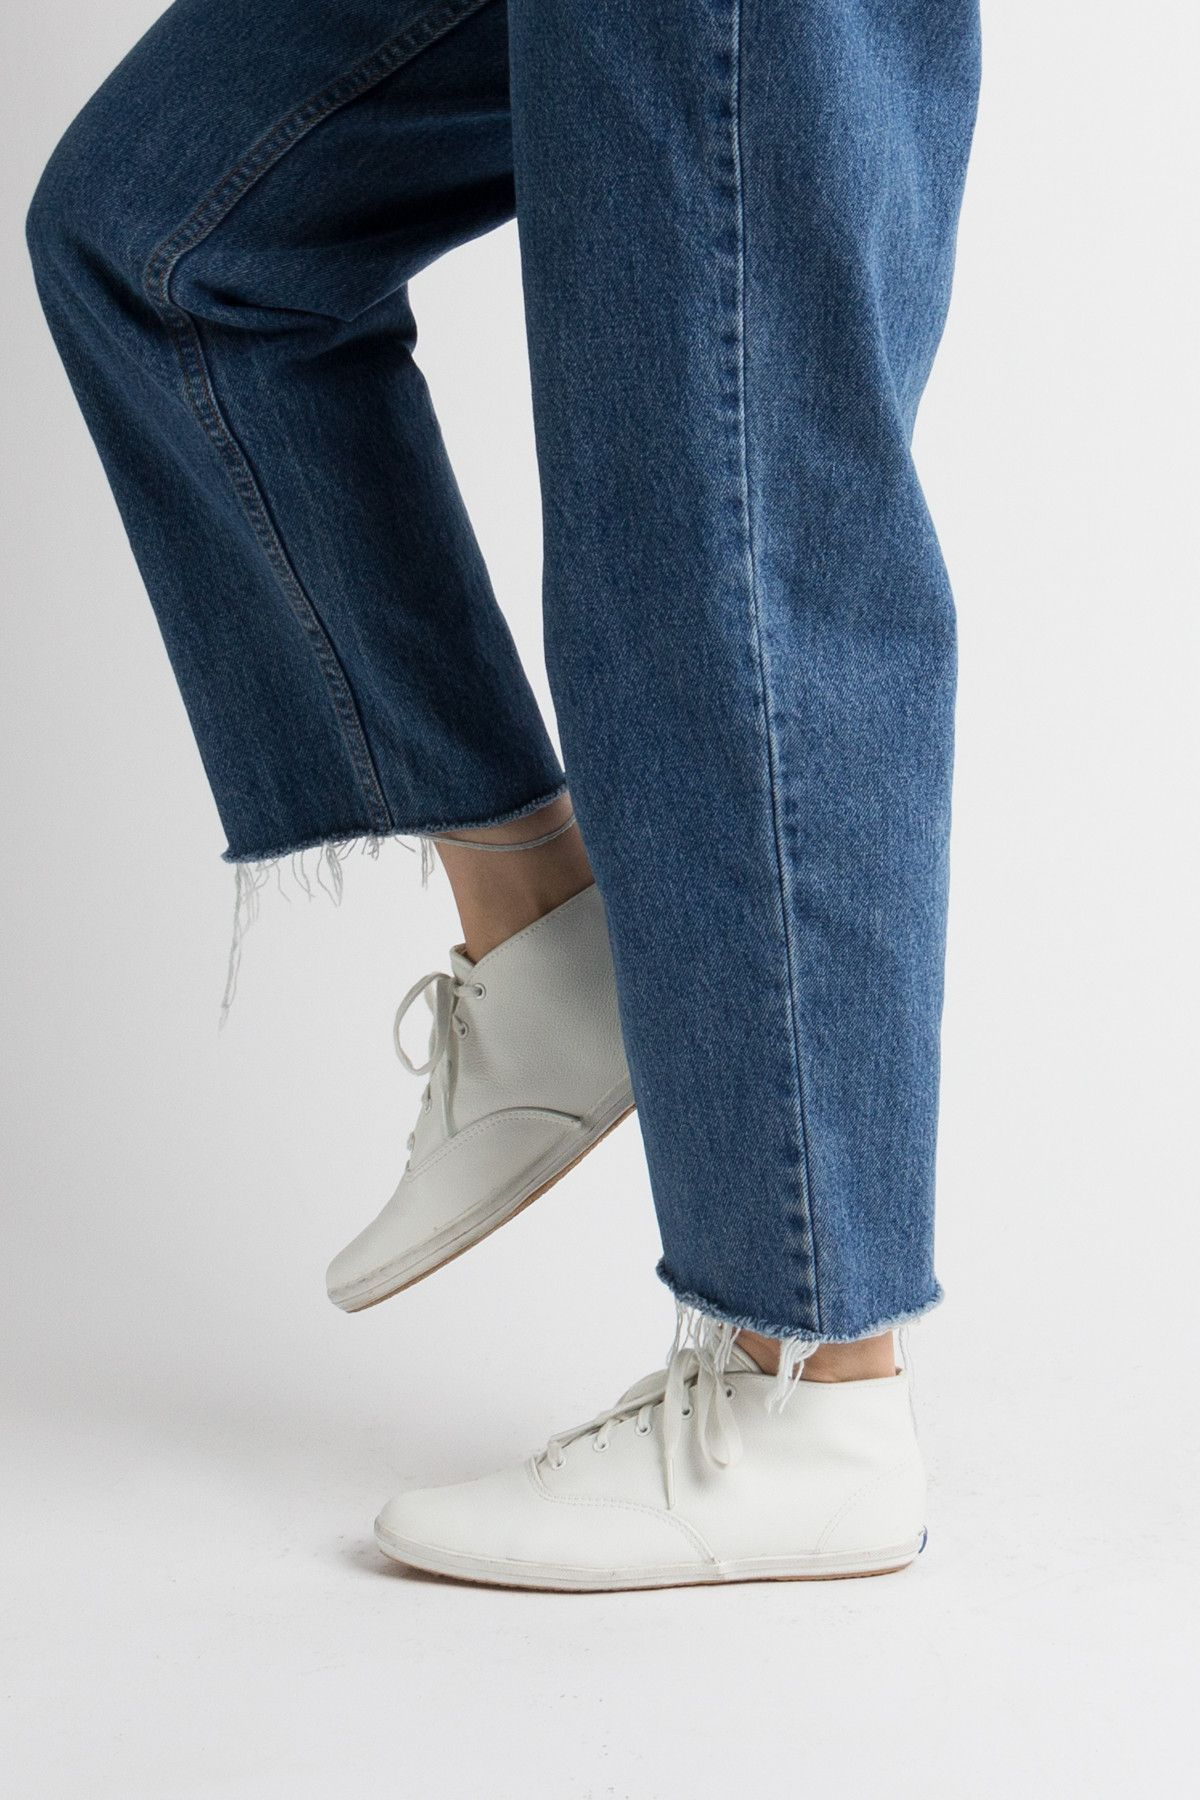 Vintage 80s White Leather High Top Keds